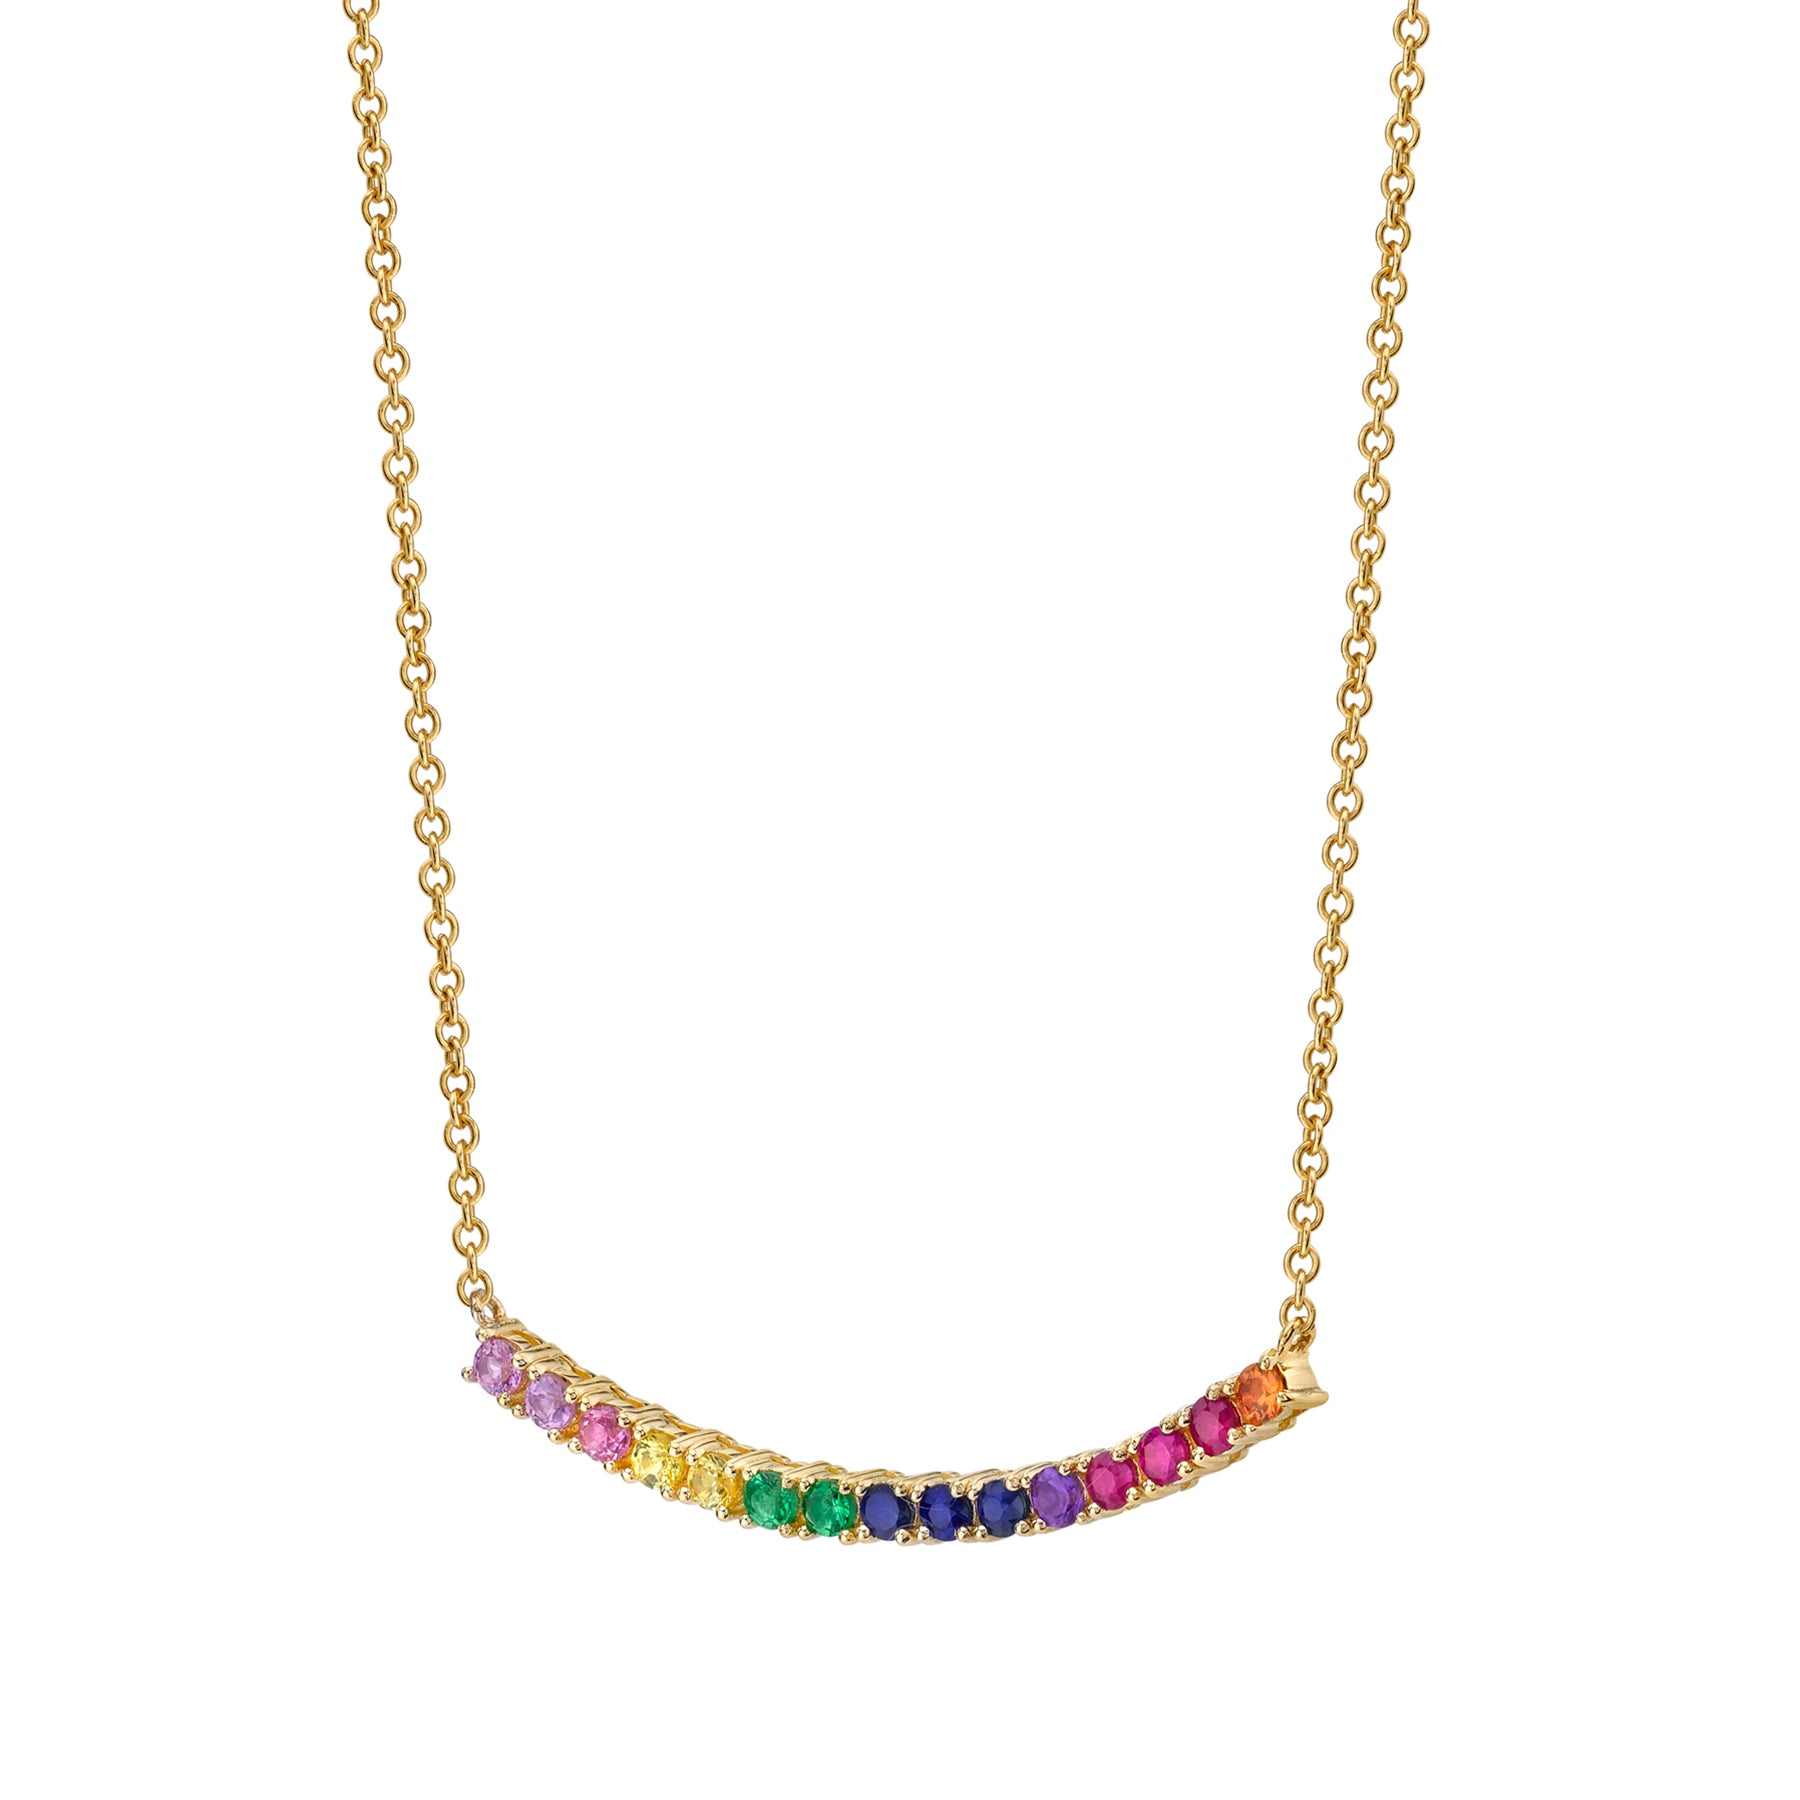 fine wdem medium white necklace products jewelry rainbow rainm diamond gottlieb stephanie